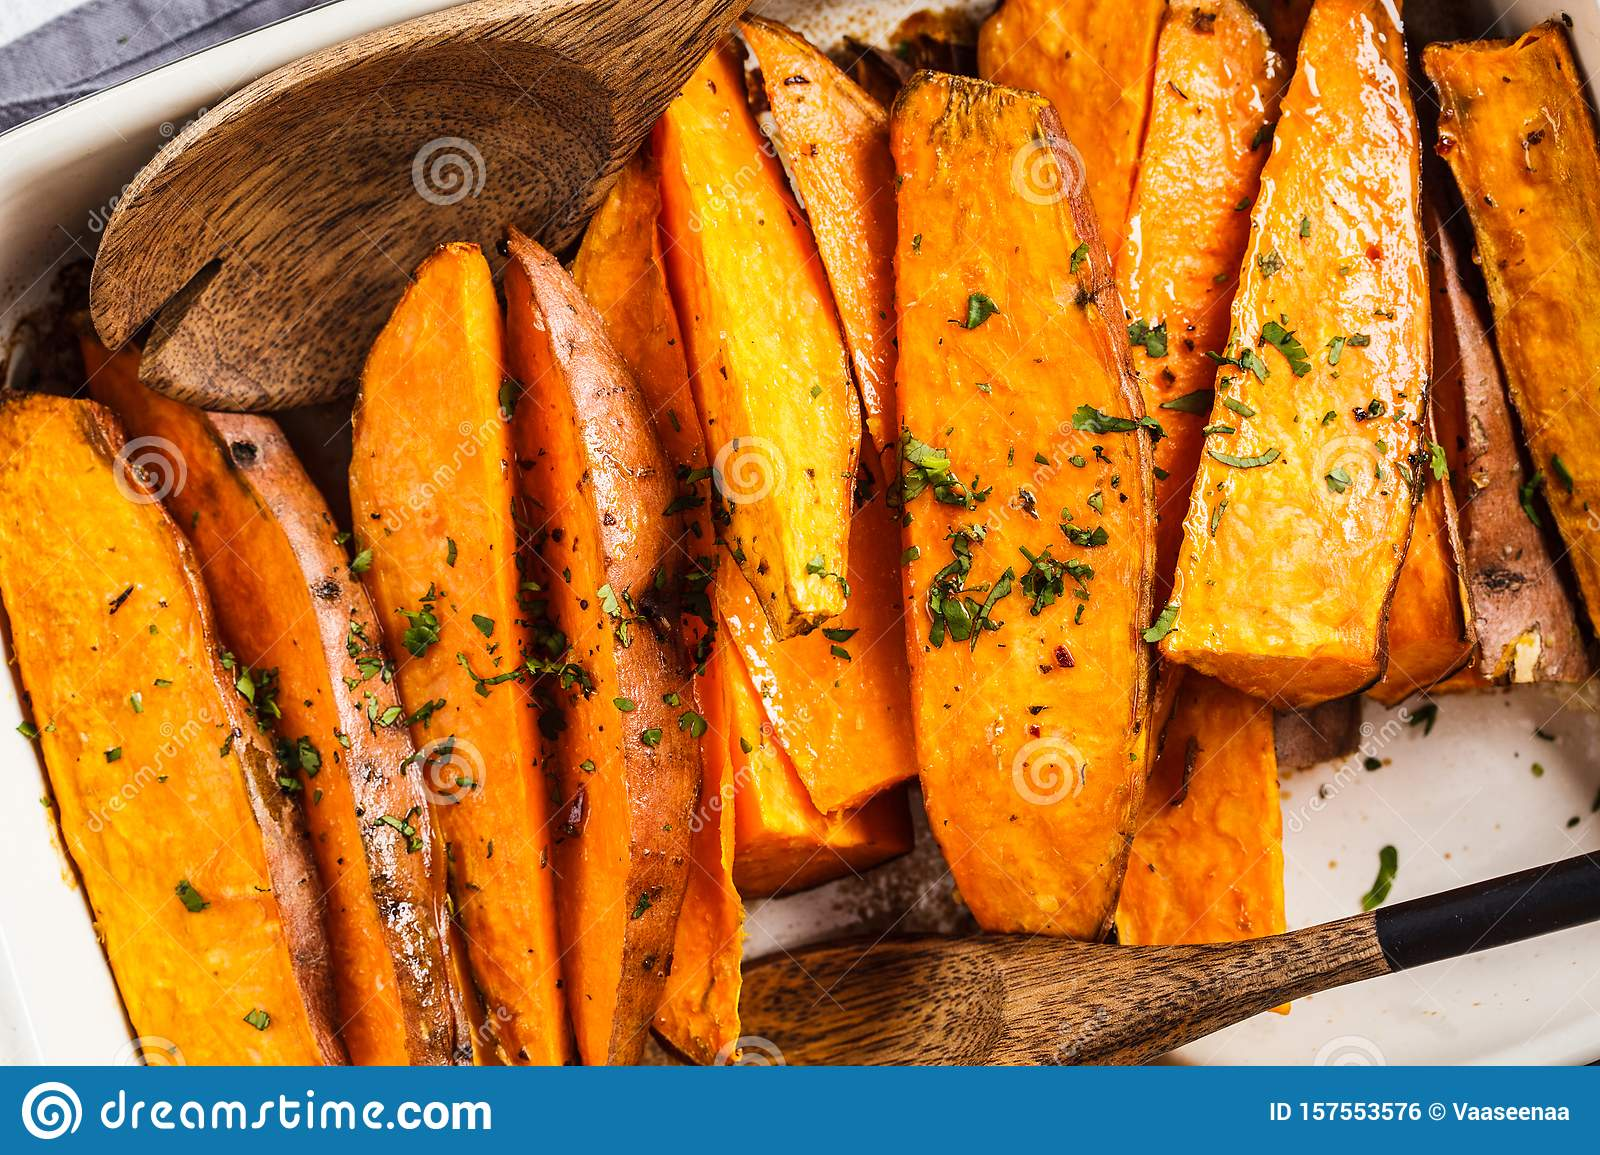 Baked Sweet Potato Slices With Spices In Oven Dish Healthy Vegan Food Concept Stock Photo Image Of Roasted Recipe 157553576